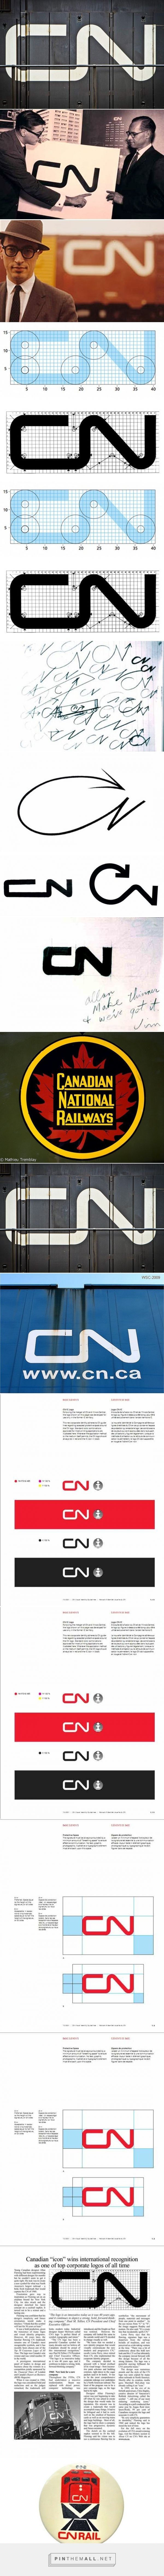 CN Logo Designed by Allan Fleming & CN Brand Guidelines... - a grouped images picture - Pin Them All